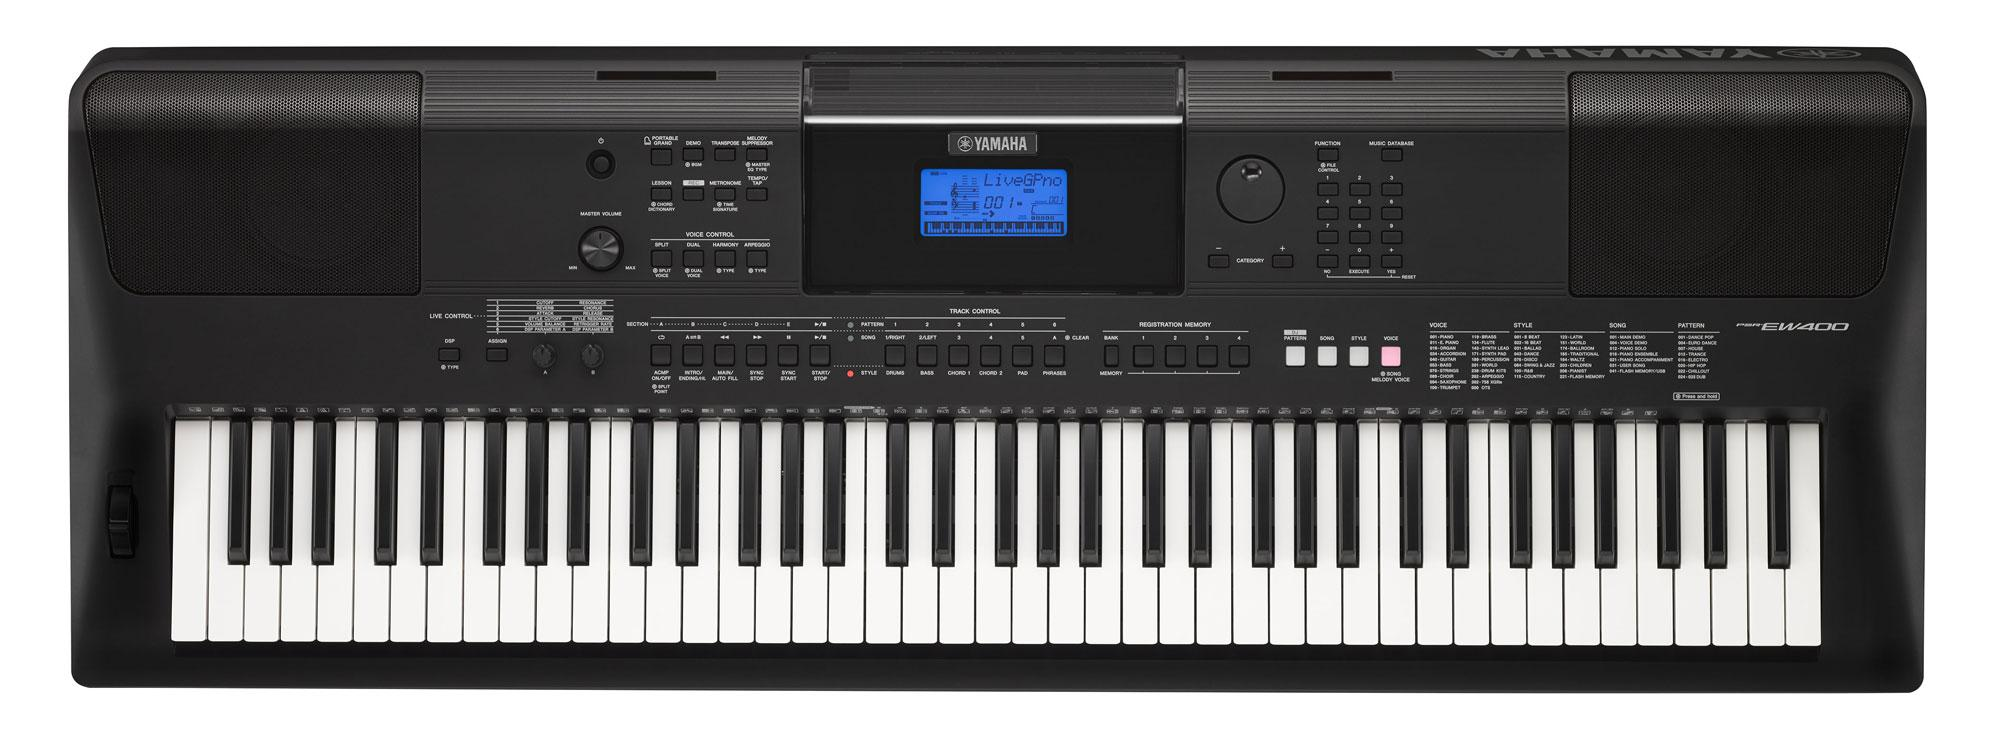 yamaha psr ew 400 keyboard mit 76 tasten set mit st nder kopfh rer noten. Black Bedroom Furniture Sets. Home Design Ideas